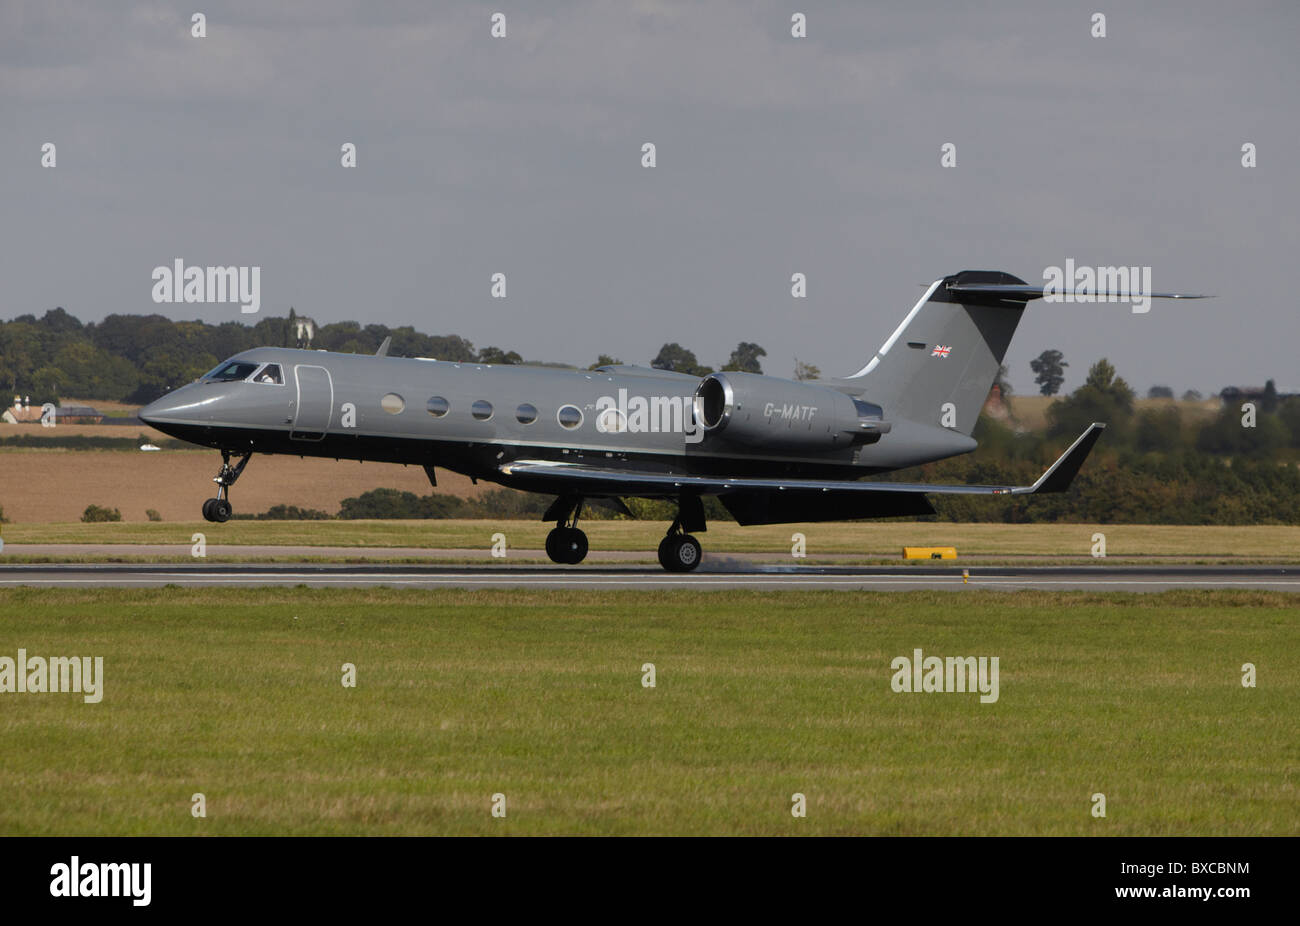 Gulfstream G-IV landing with smoke coming off tire at Luton Airport, Bedfordshire, England, United Kingdom - Stock Image